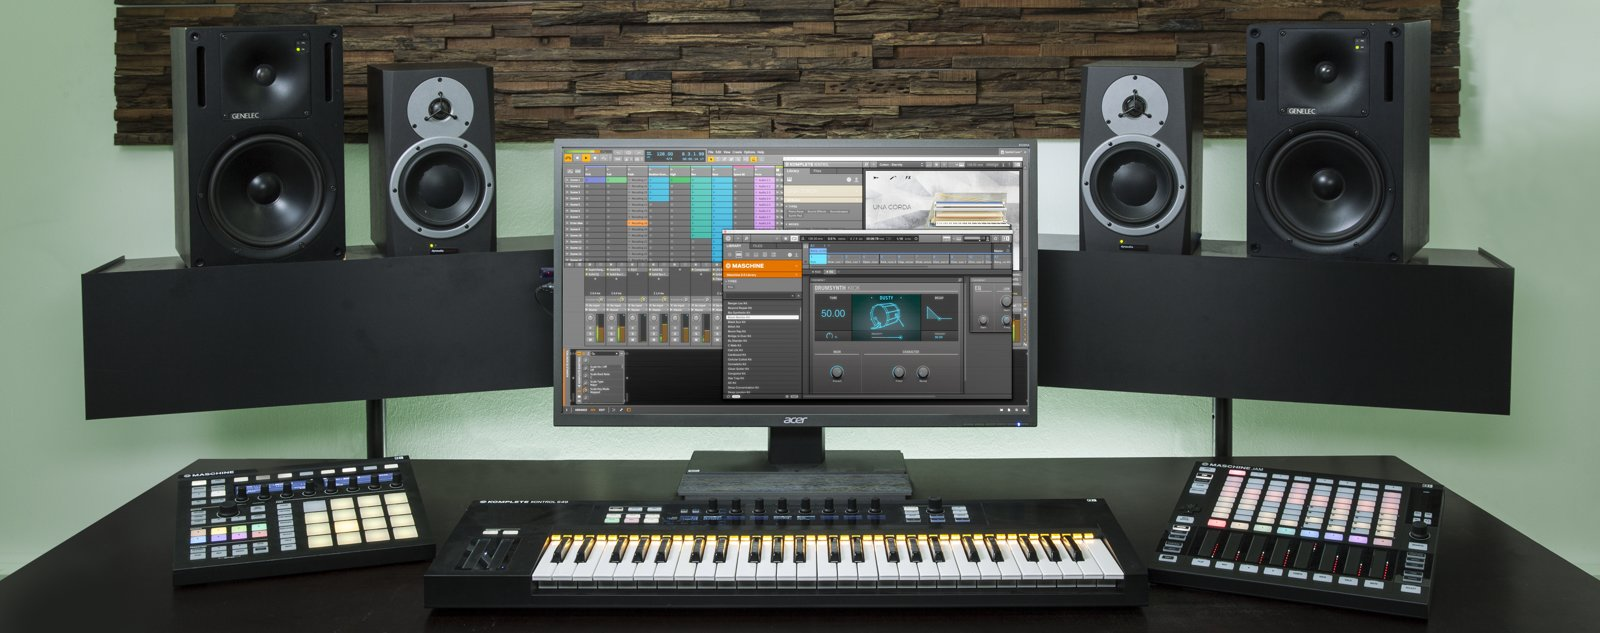 Maschine JAM - any users? (Topic in the \'Bitwig\' forum)   KVR Audio ...